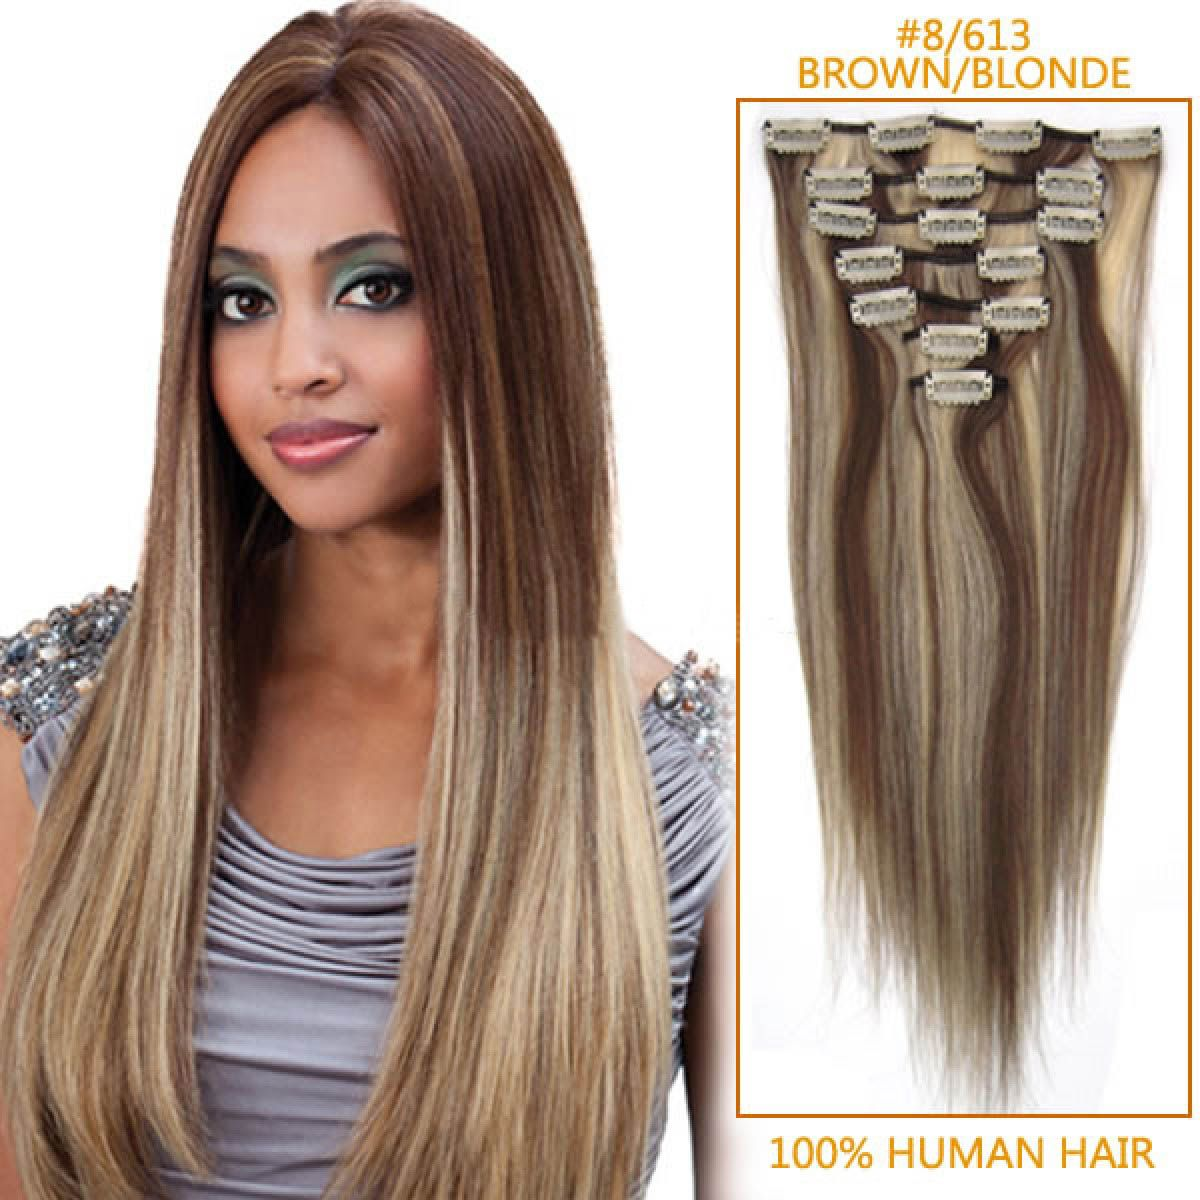 32 inch long straight clip in real human hair extensions 8613 11 32 inch long straight clip in real human hair extensions 8613 11 pieces pmusecretfo Images